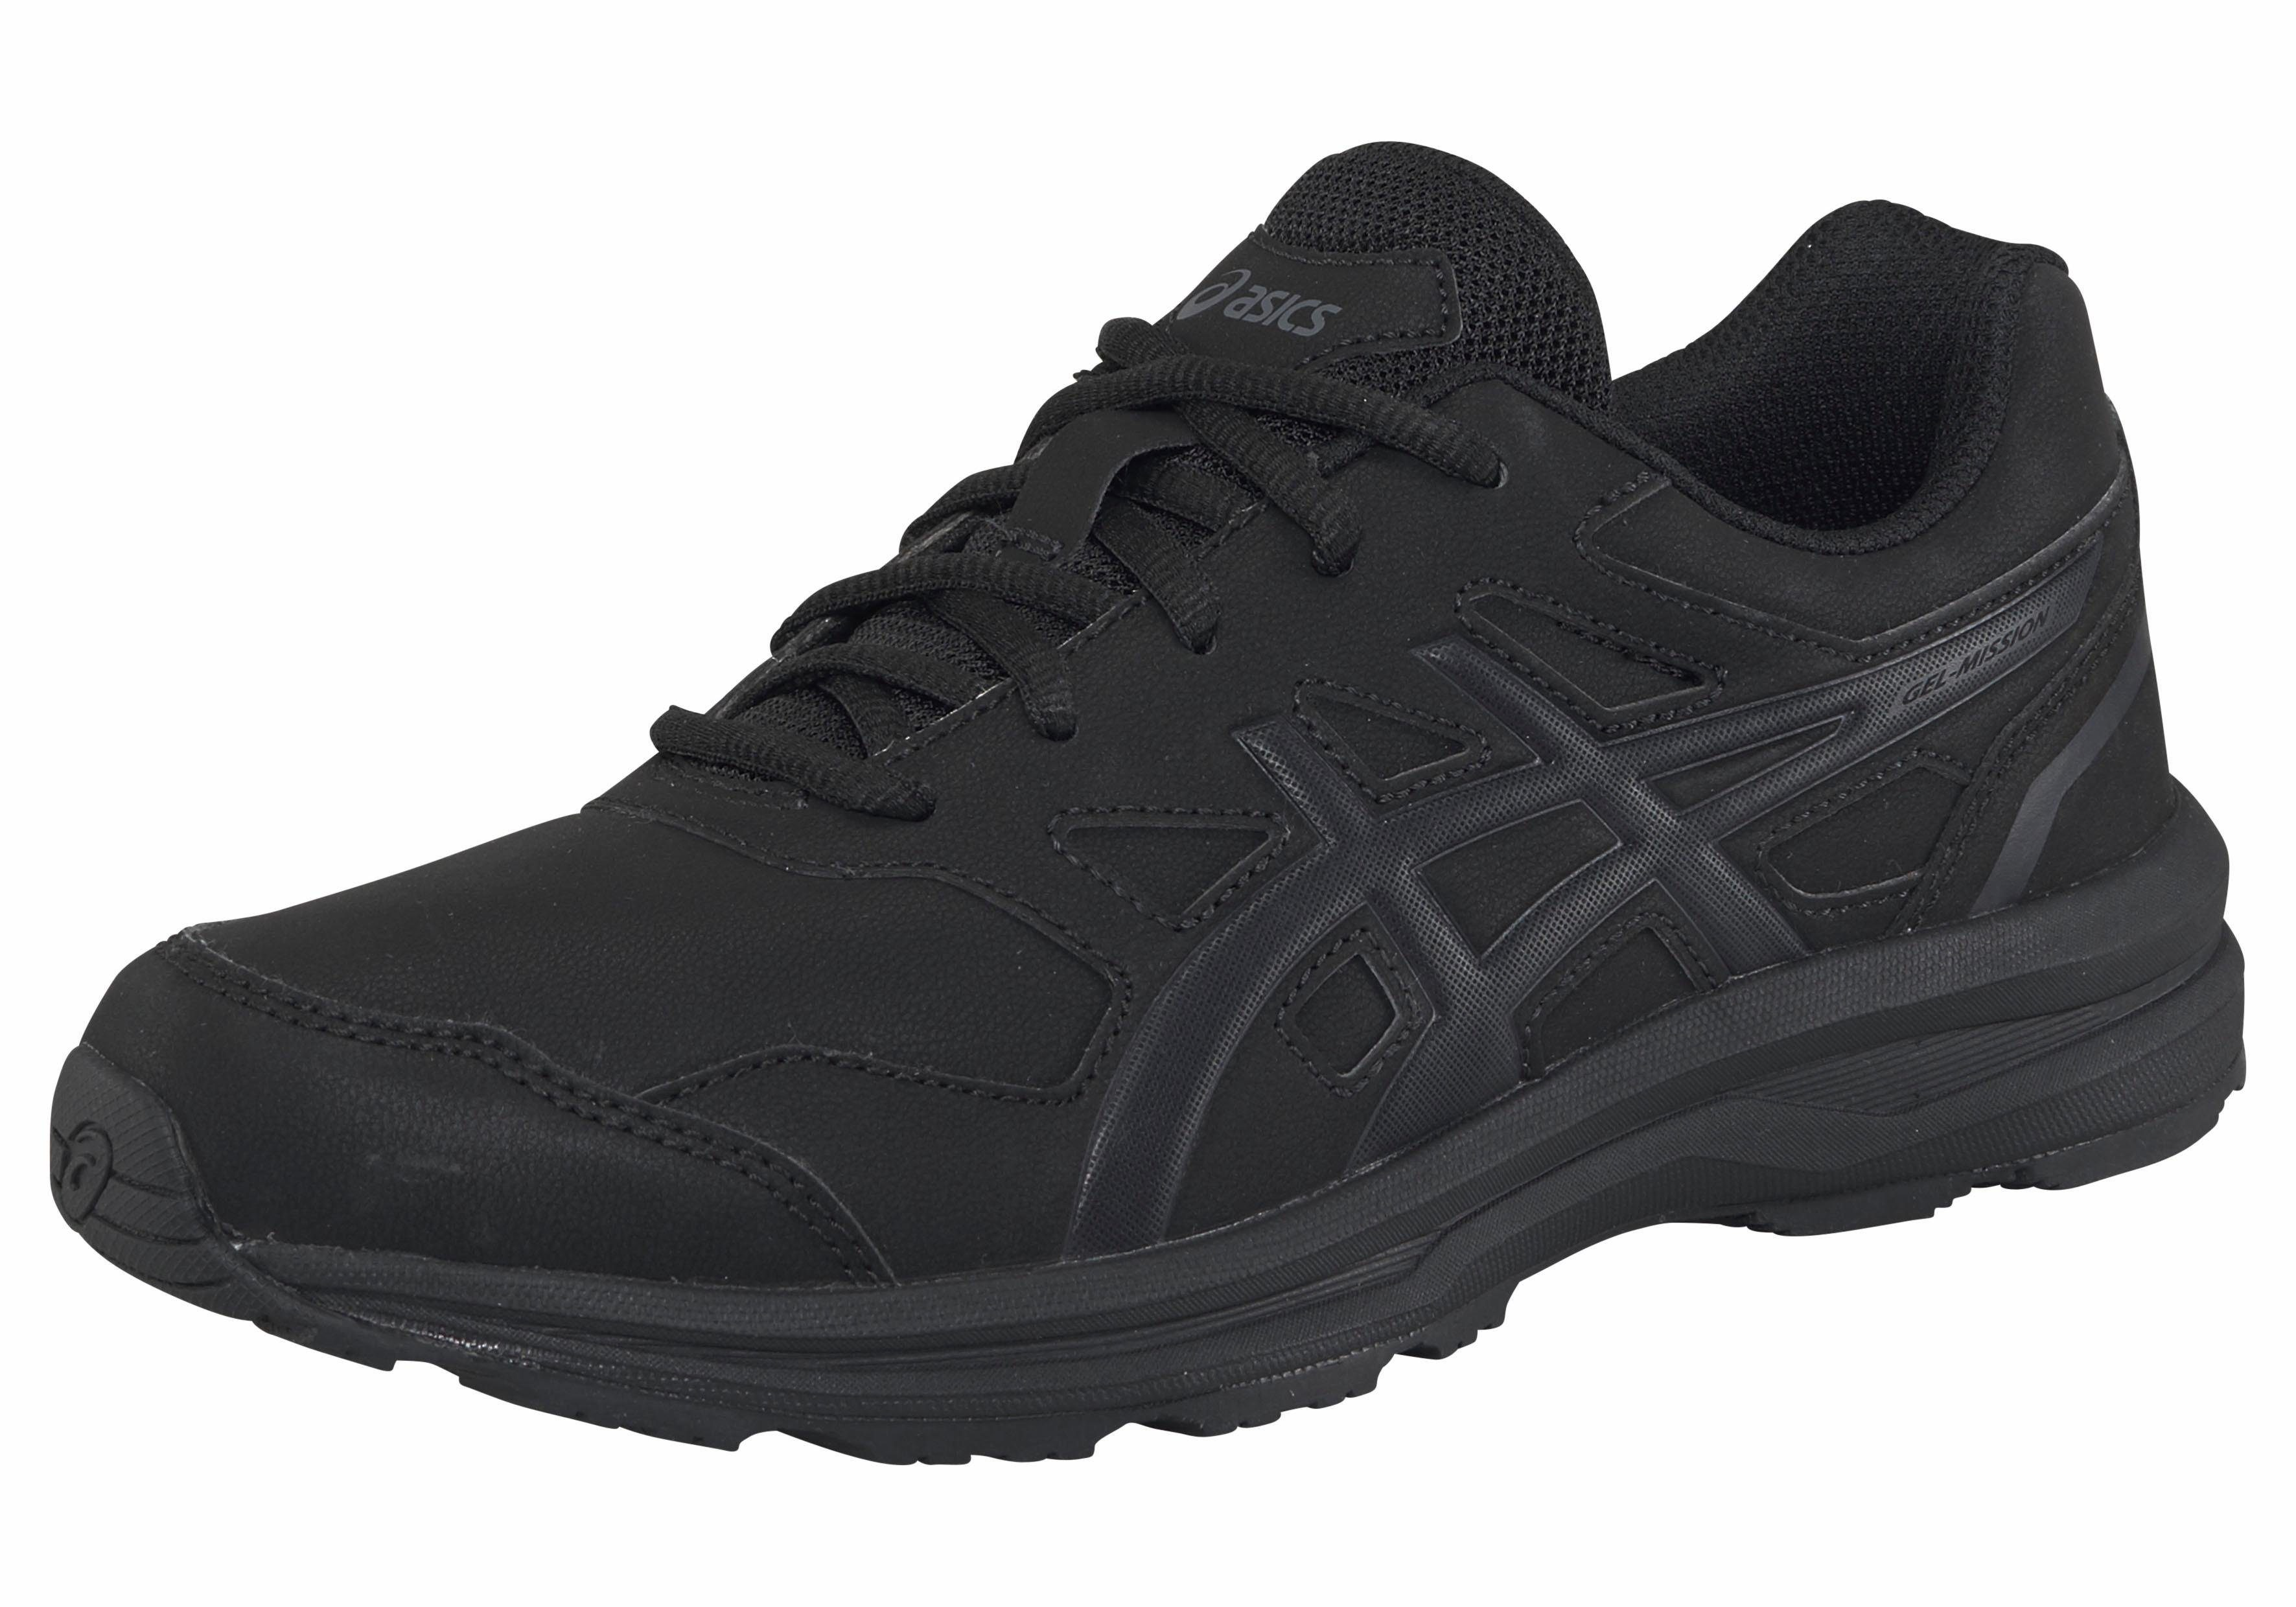 Asics »Gel-Mission 3 W« Walkingschuh online kaufen | OTTO